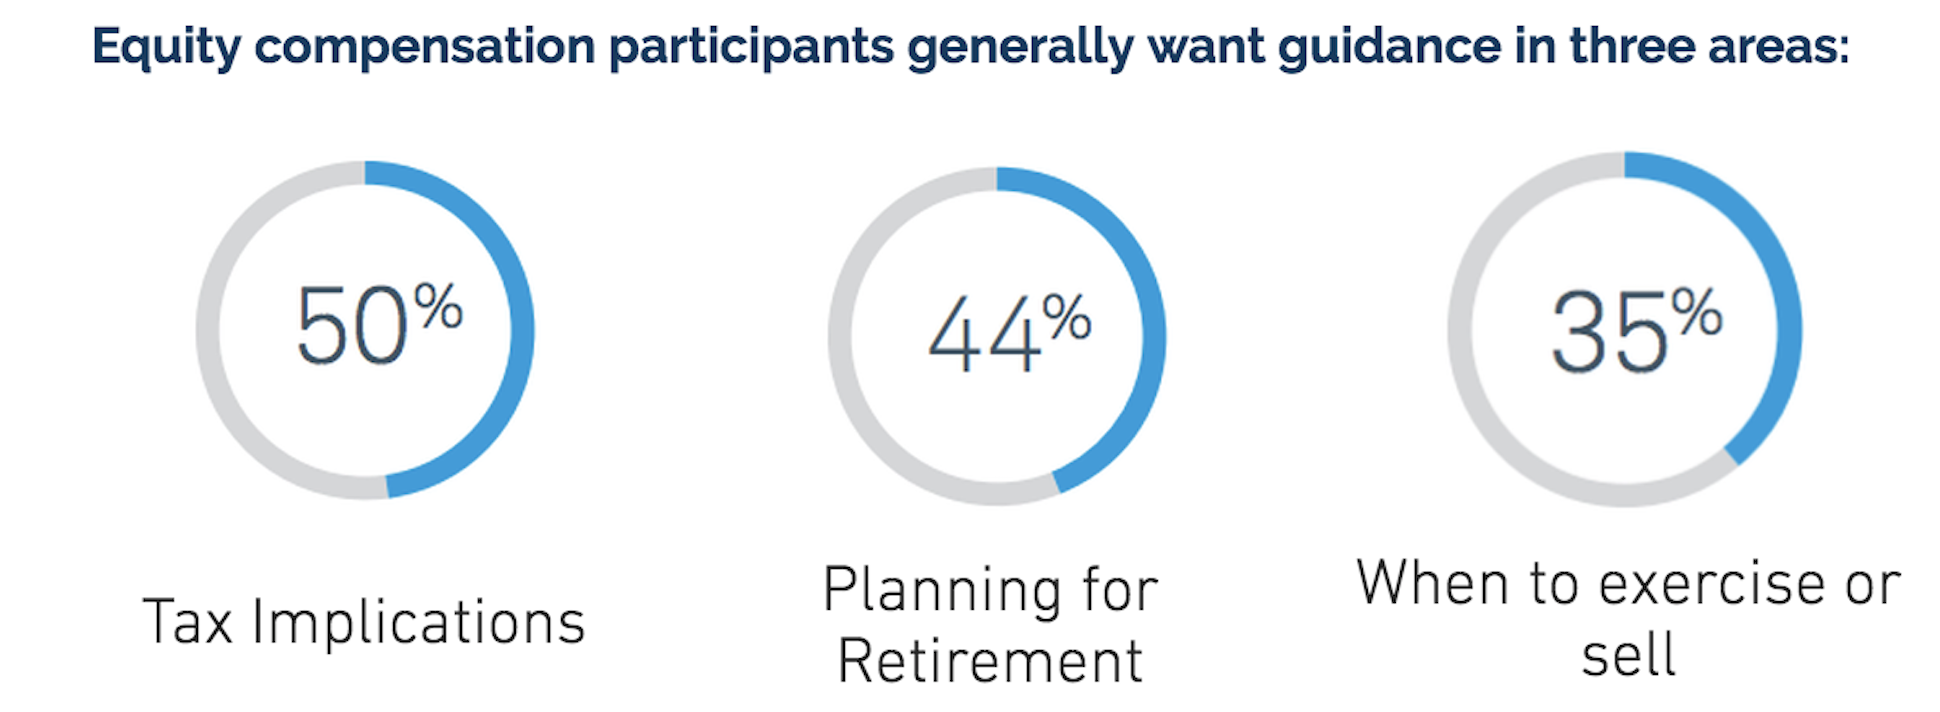 equity compensation participants want guidance in 3 areas